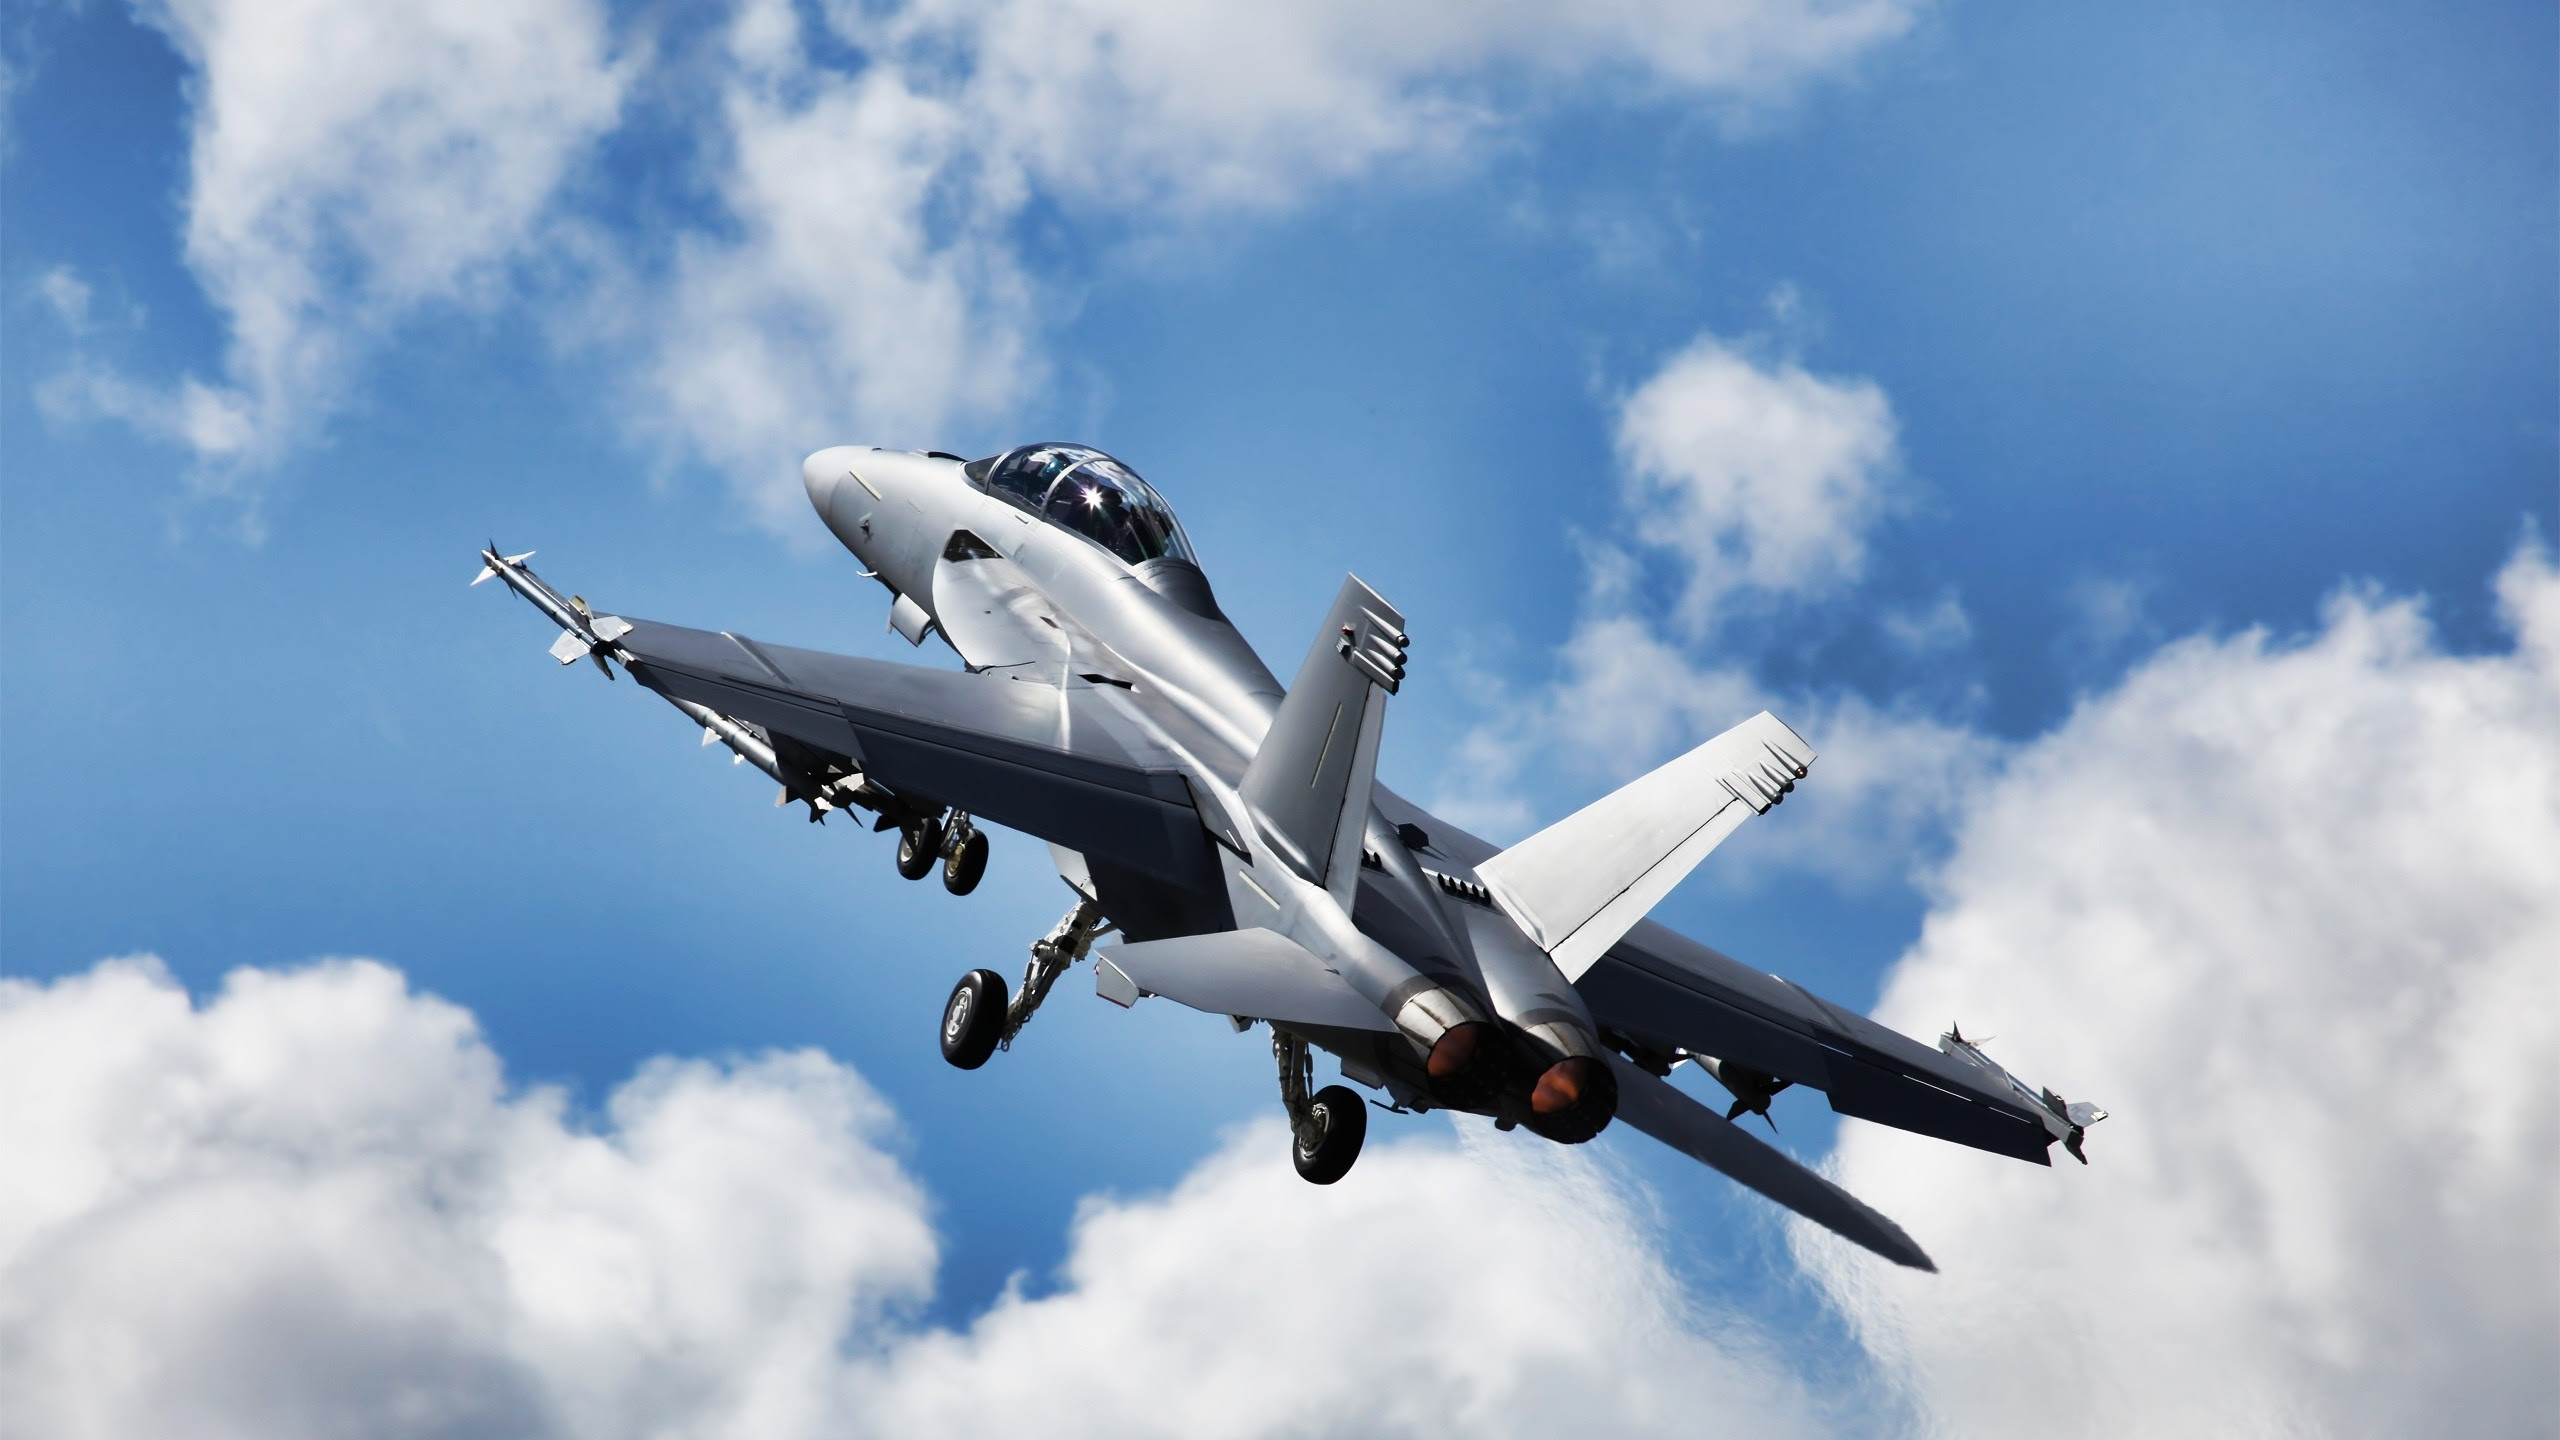 Boeing Fa 18 Super Hornet Wallpapers In Jpg Format For Free Download